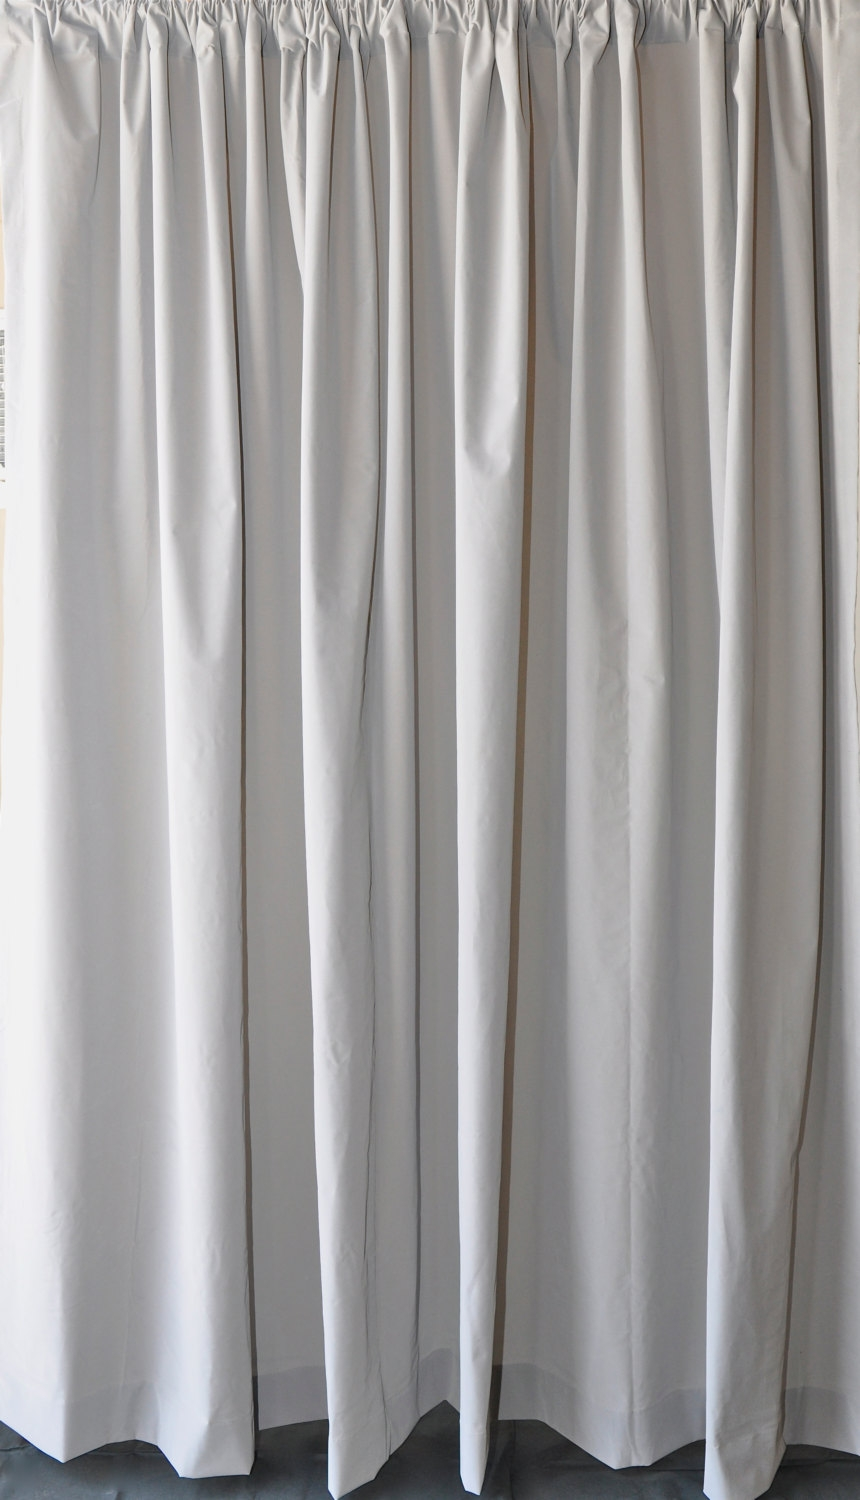 Solid Gray Velvet Fabric Curtain 96 Inch High Long Panel Custom Inside Velvet Material For Curtains (Image 10 of 15)